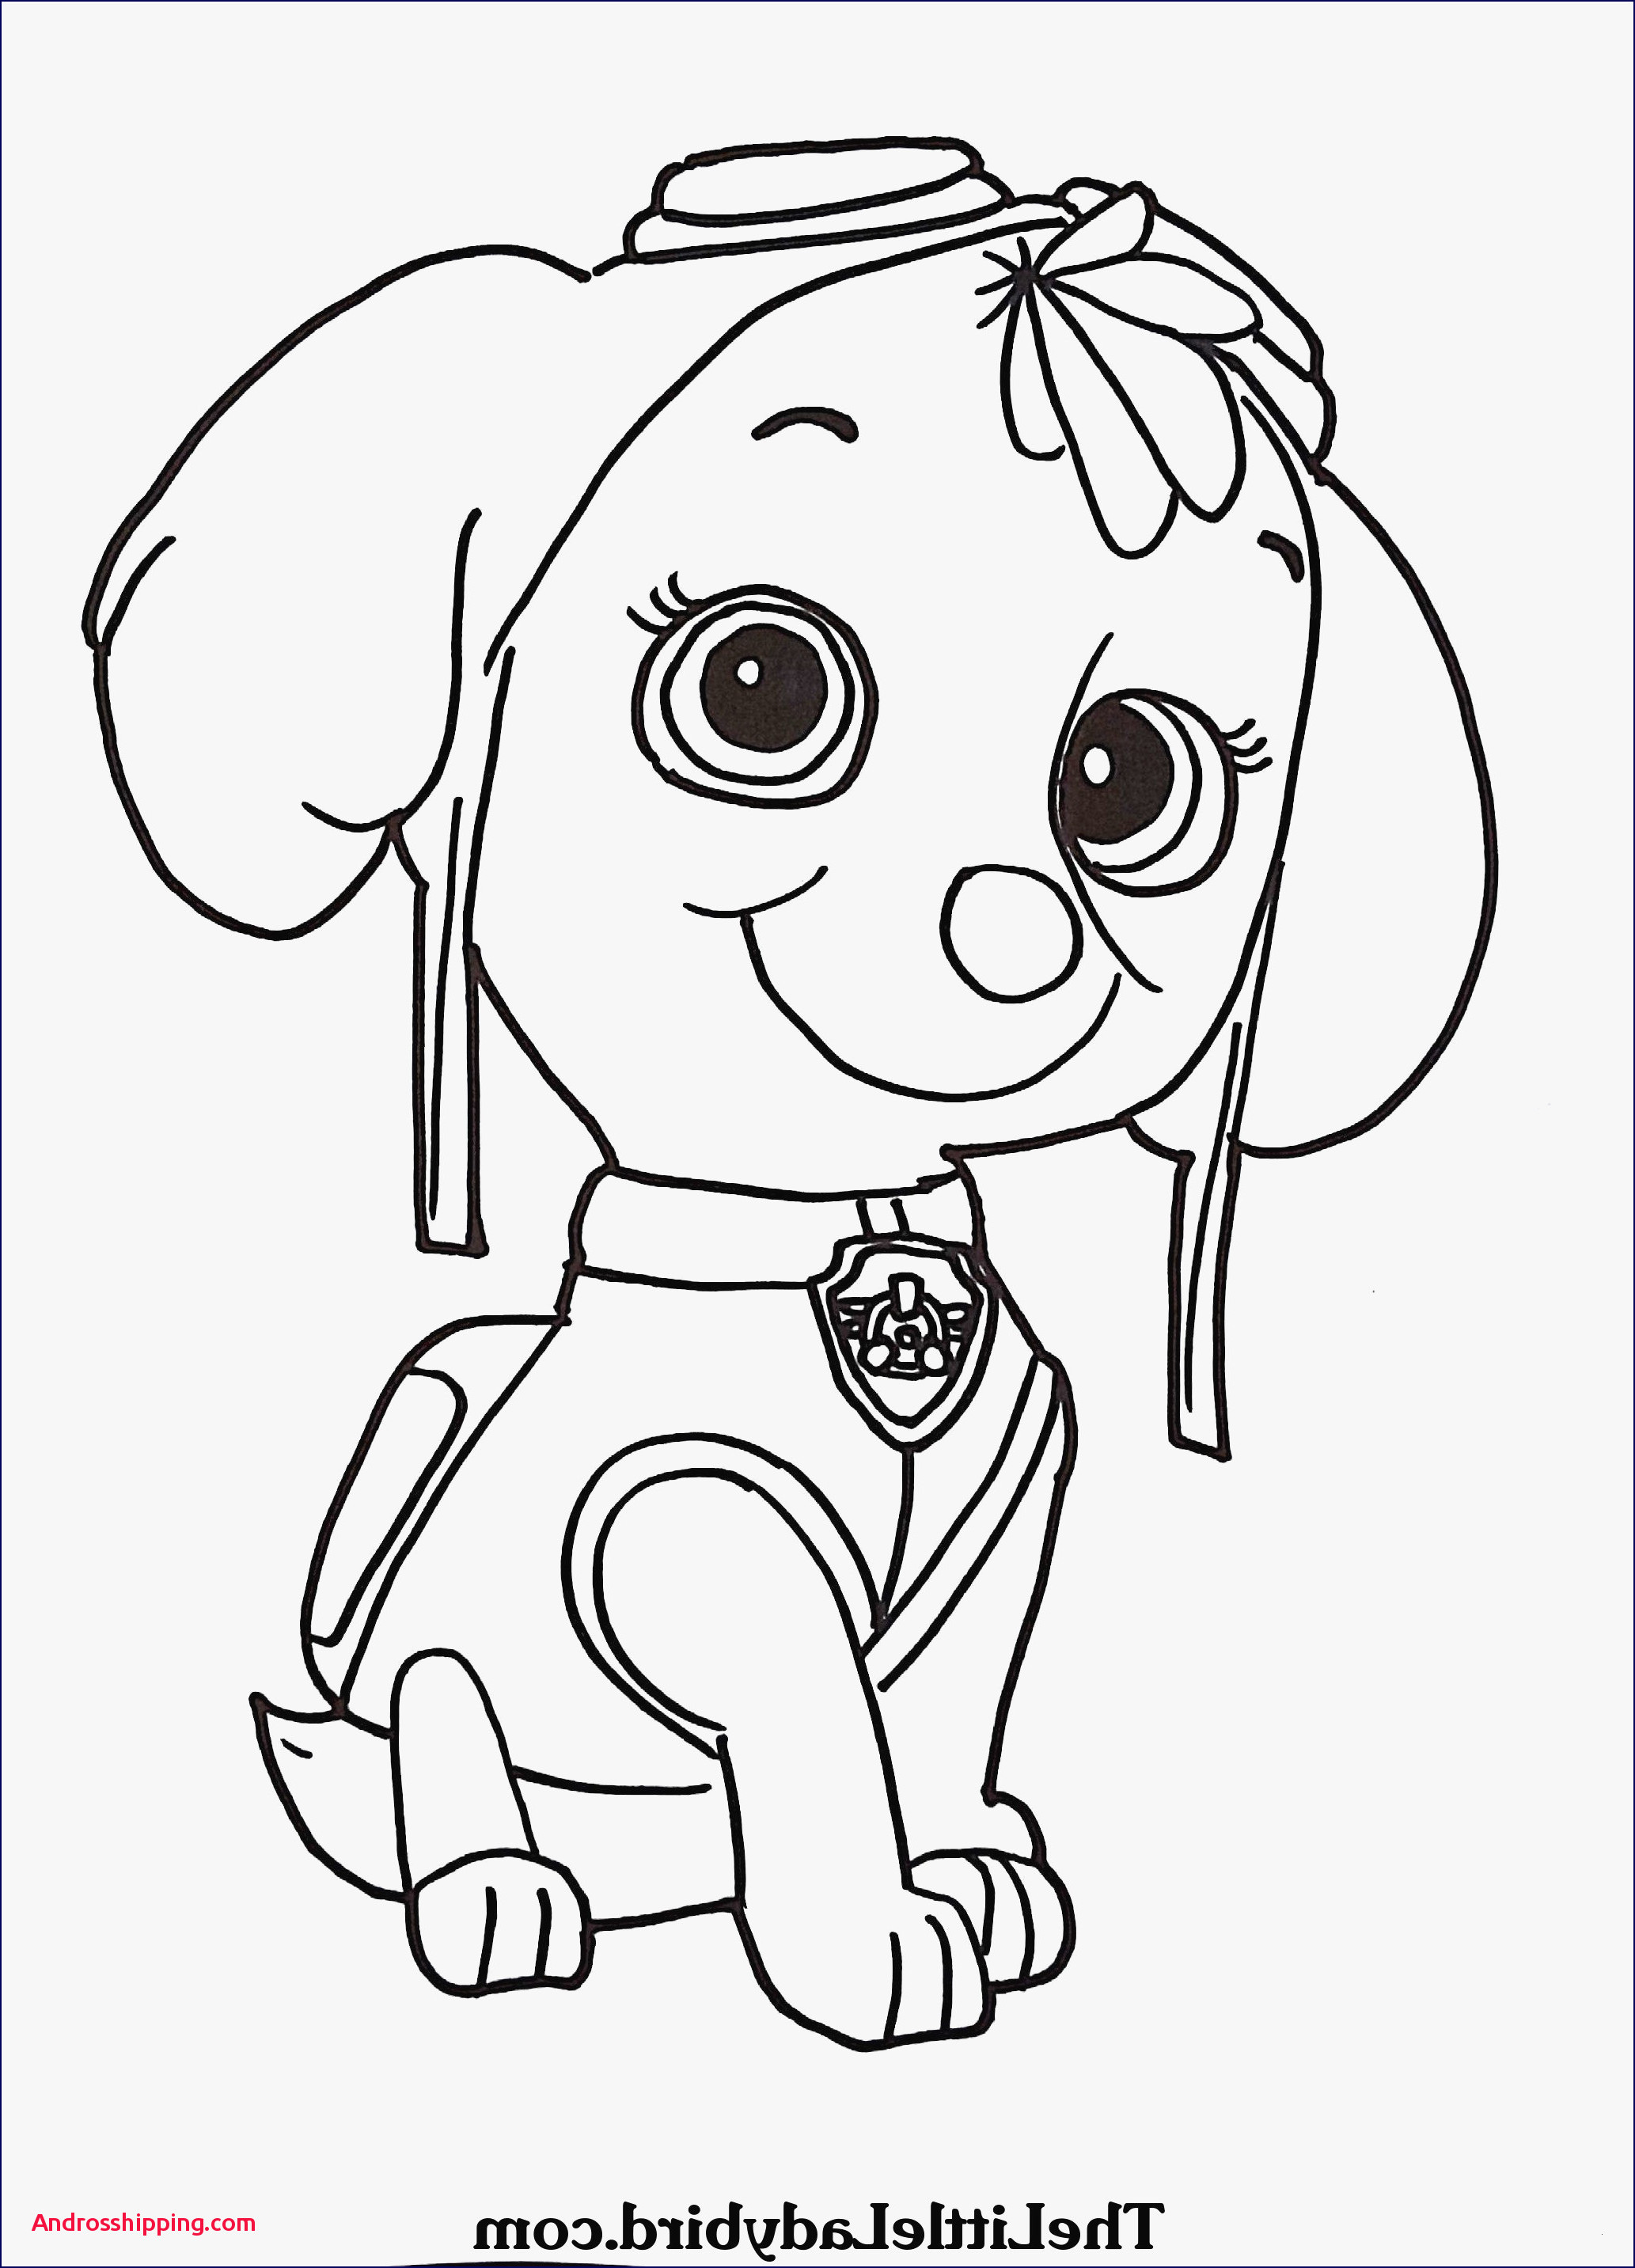 Paw Patrol Ausmalbilder Tracker Genial 10 Inspirational Paw Patrol Number Coloring Pages androsshipping Fotos